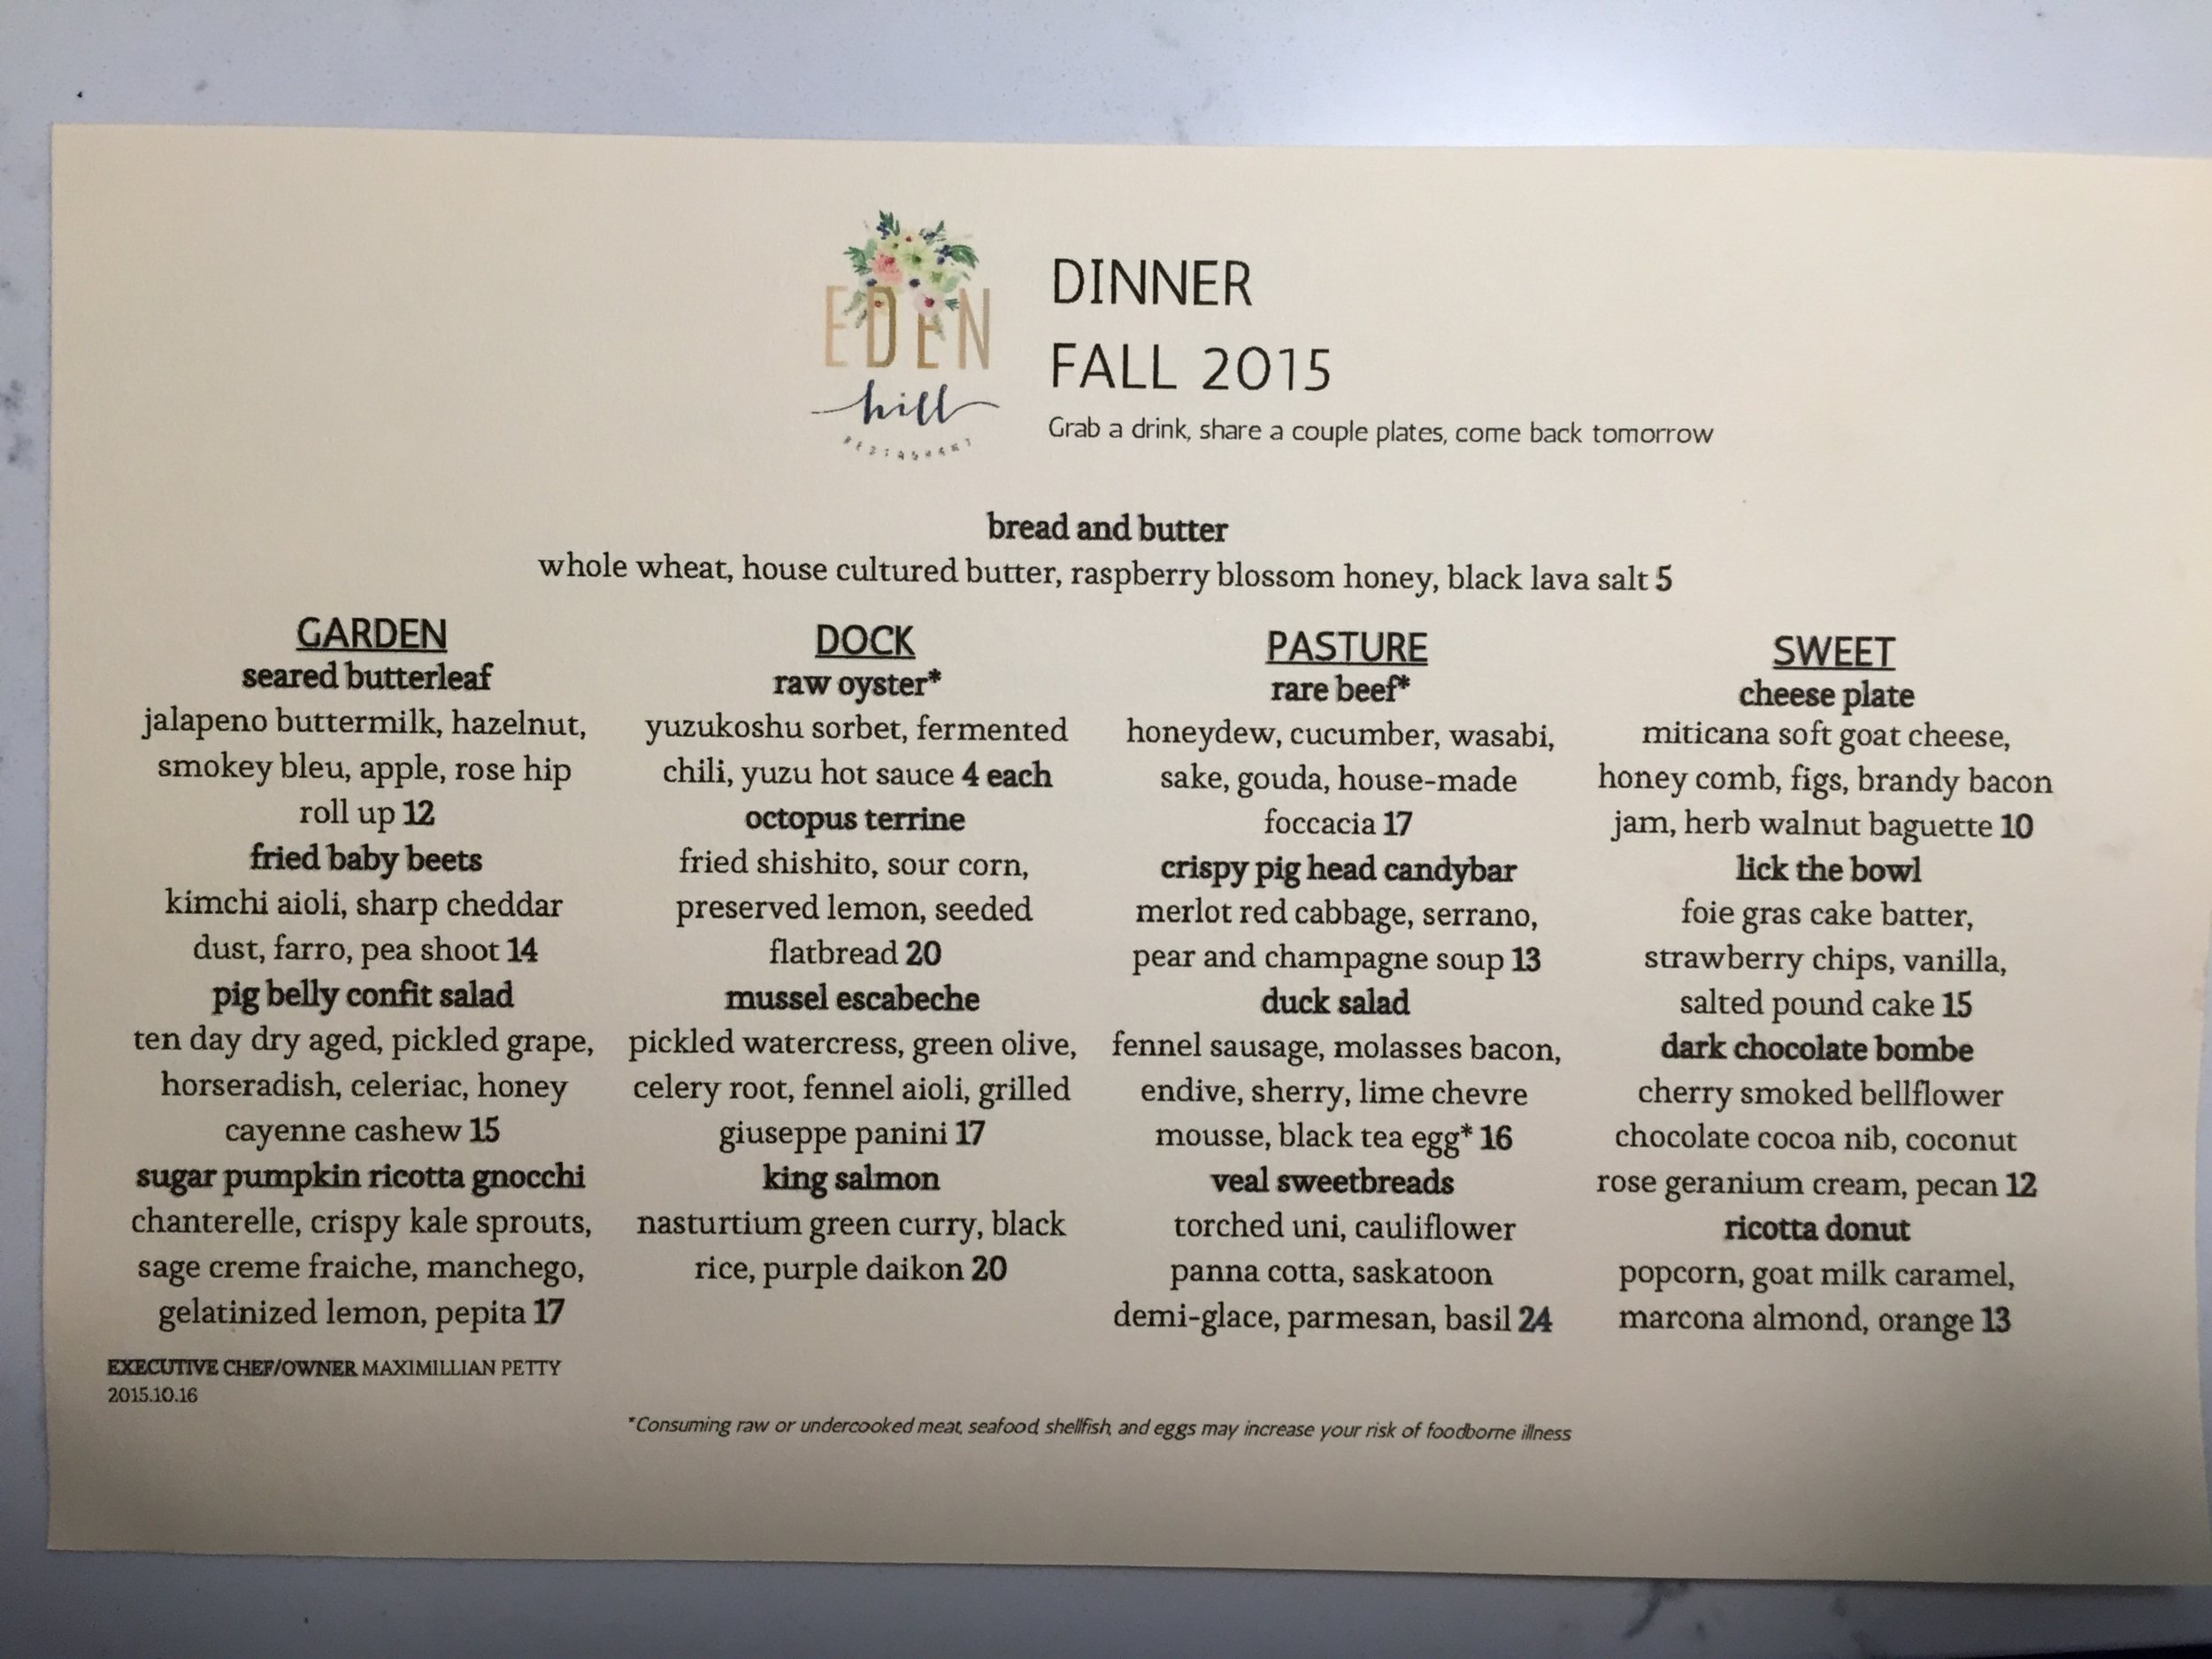 Last night's dinner menu